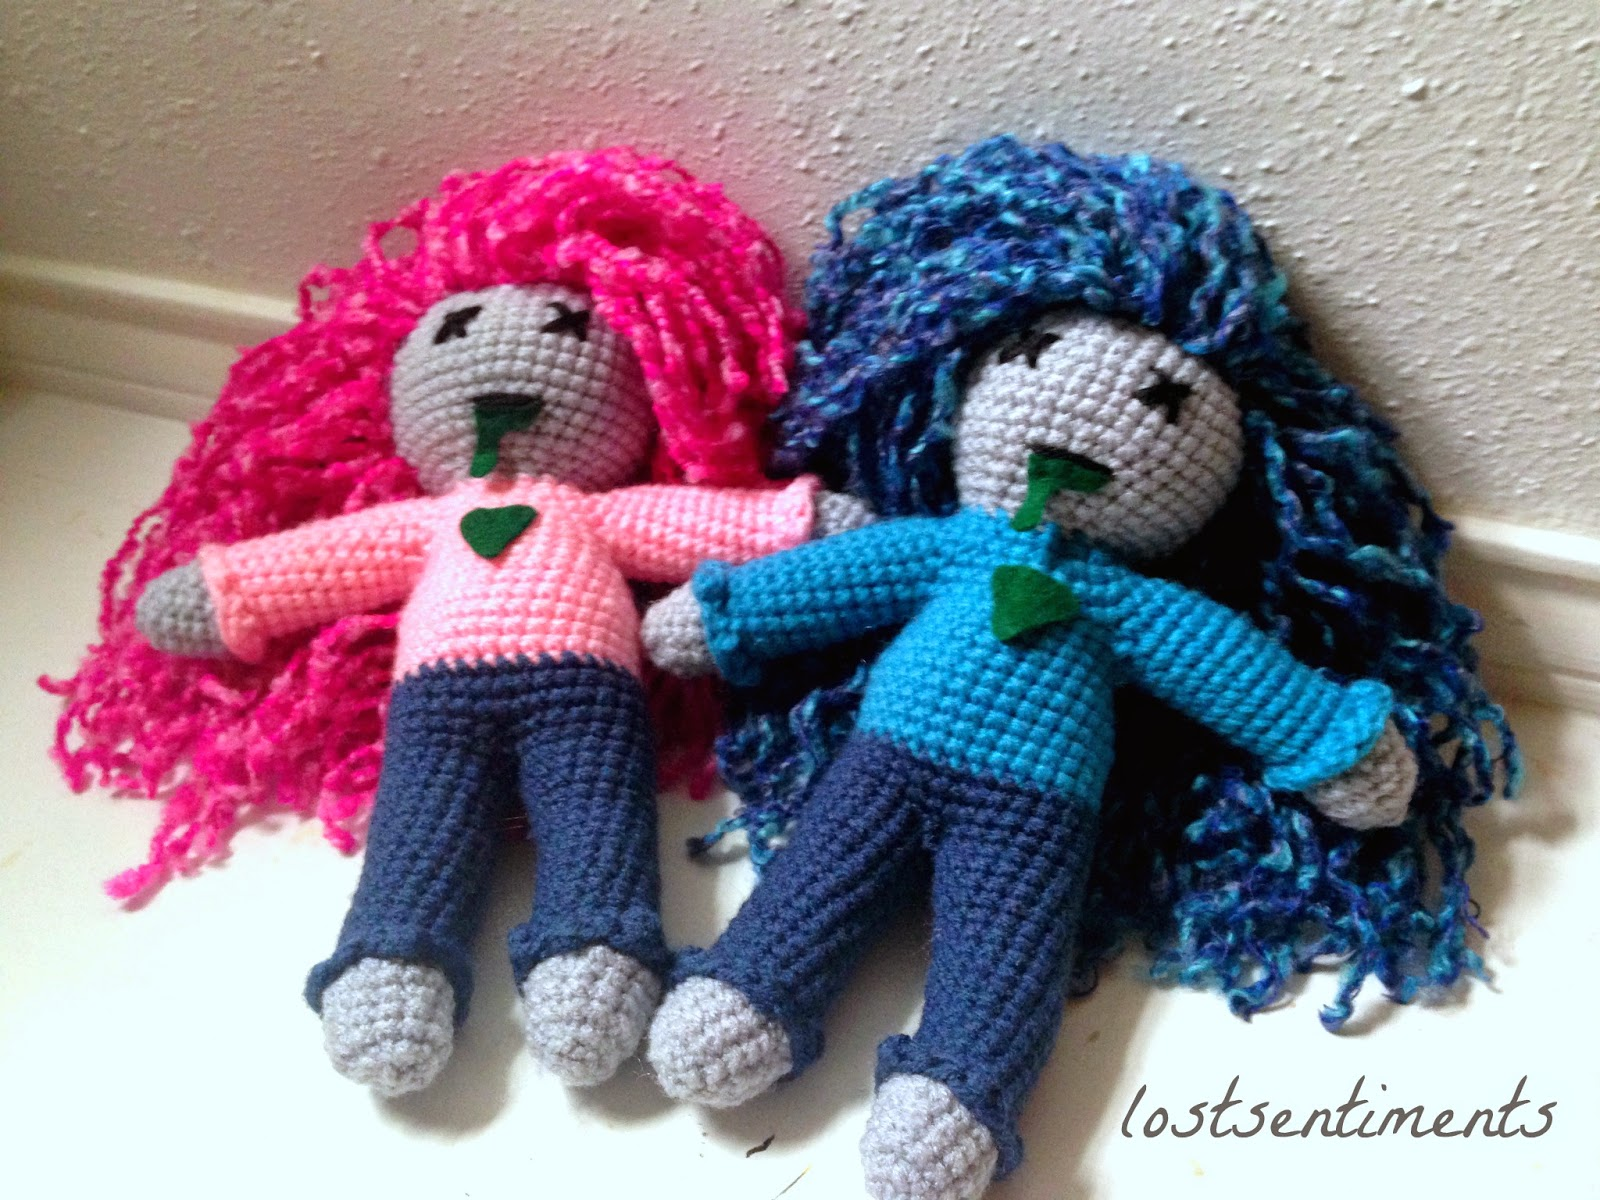 lostsentiments: Free Amigurumi Pattern for Body of Large Doll